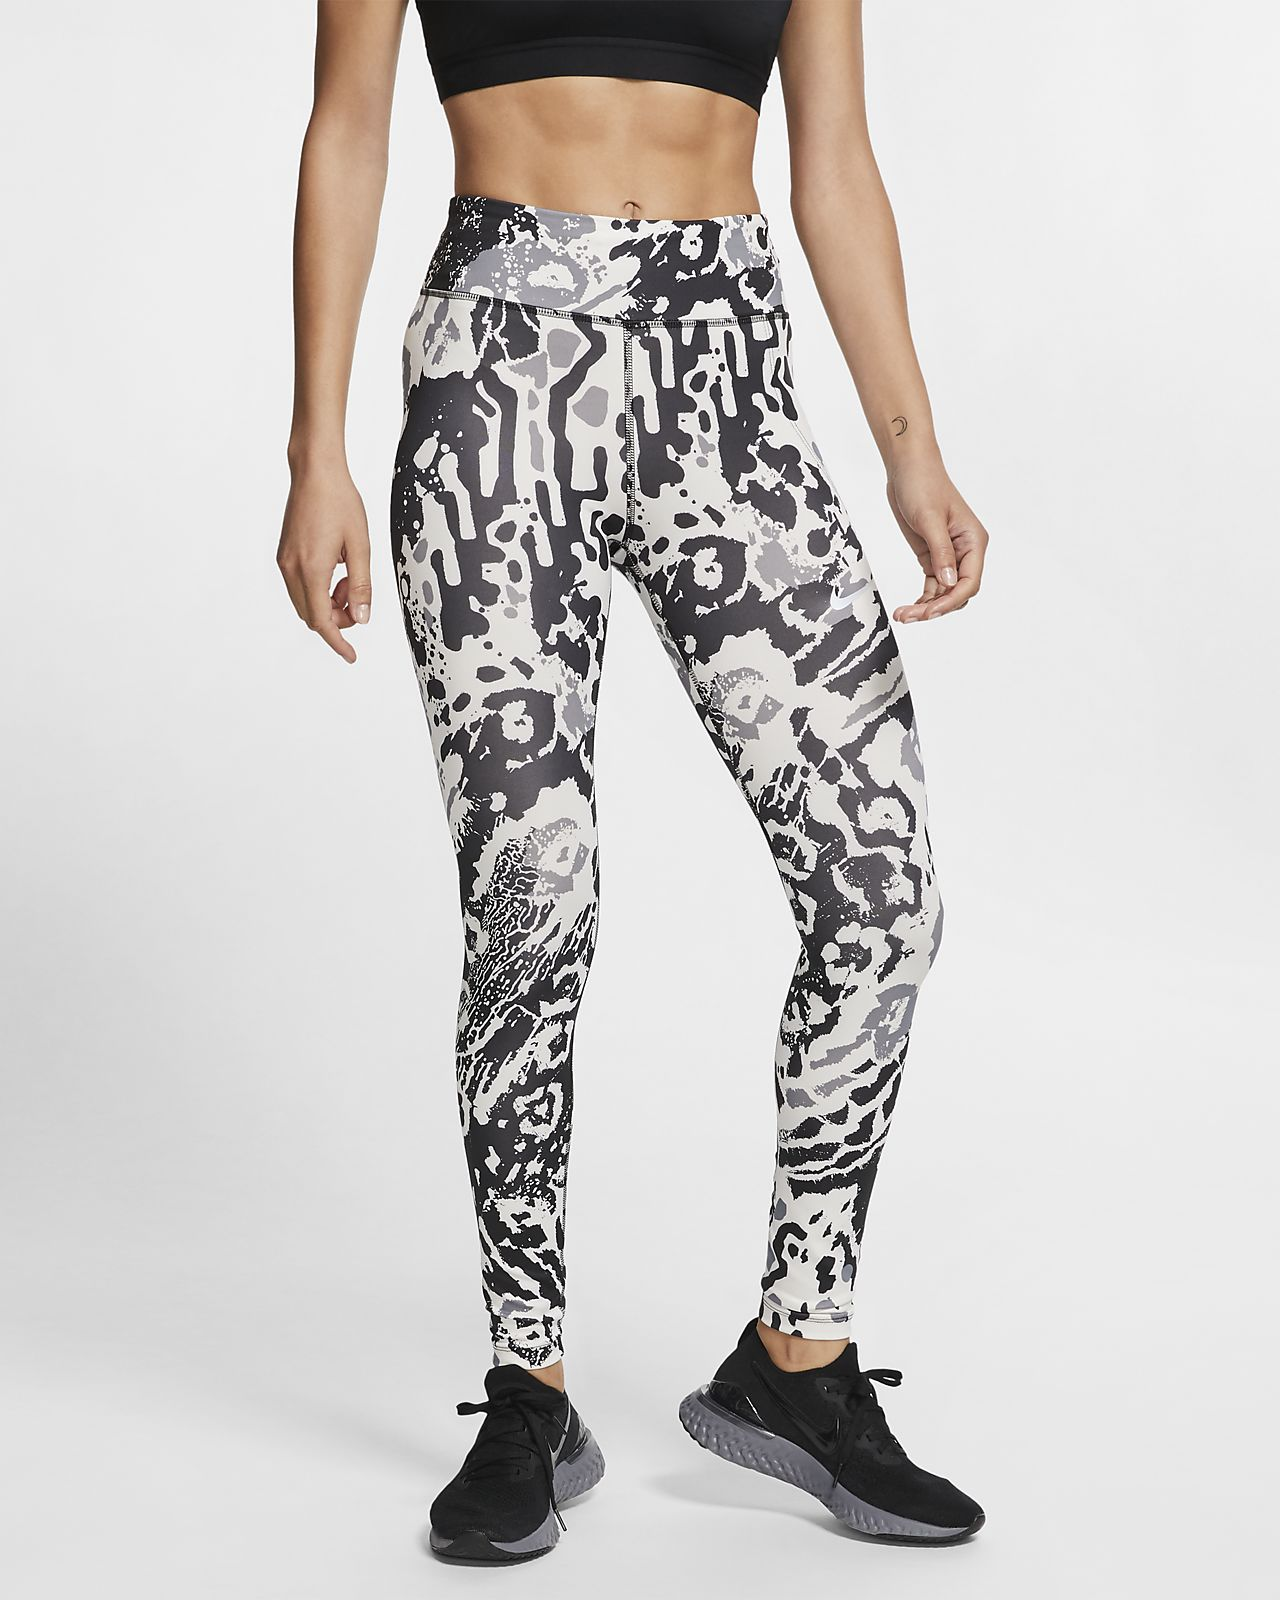 Nike Fast Women's 7/8 Printed Running Tights